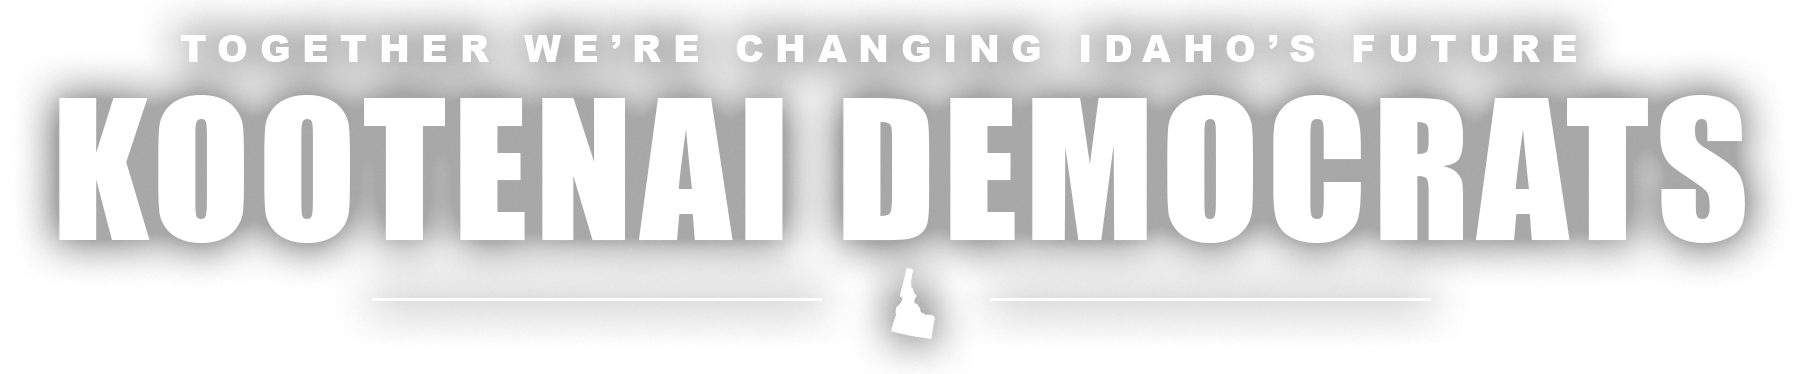 Kootenai Democrats - Together we're changing Idaho's future